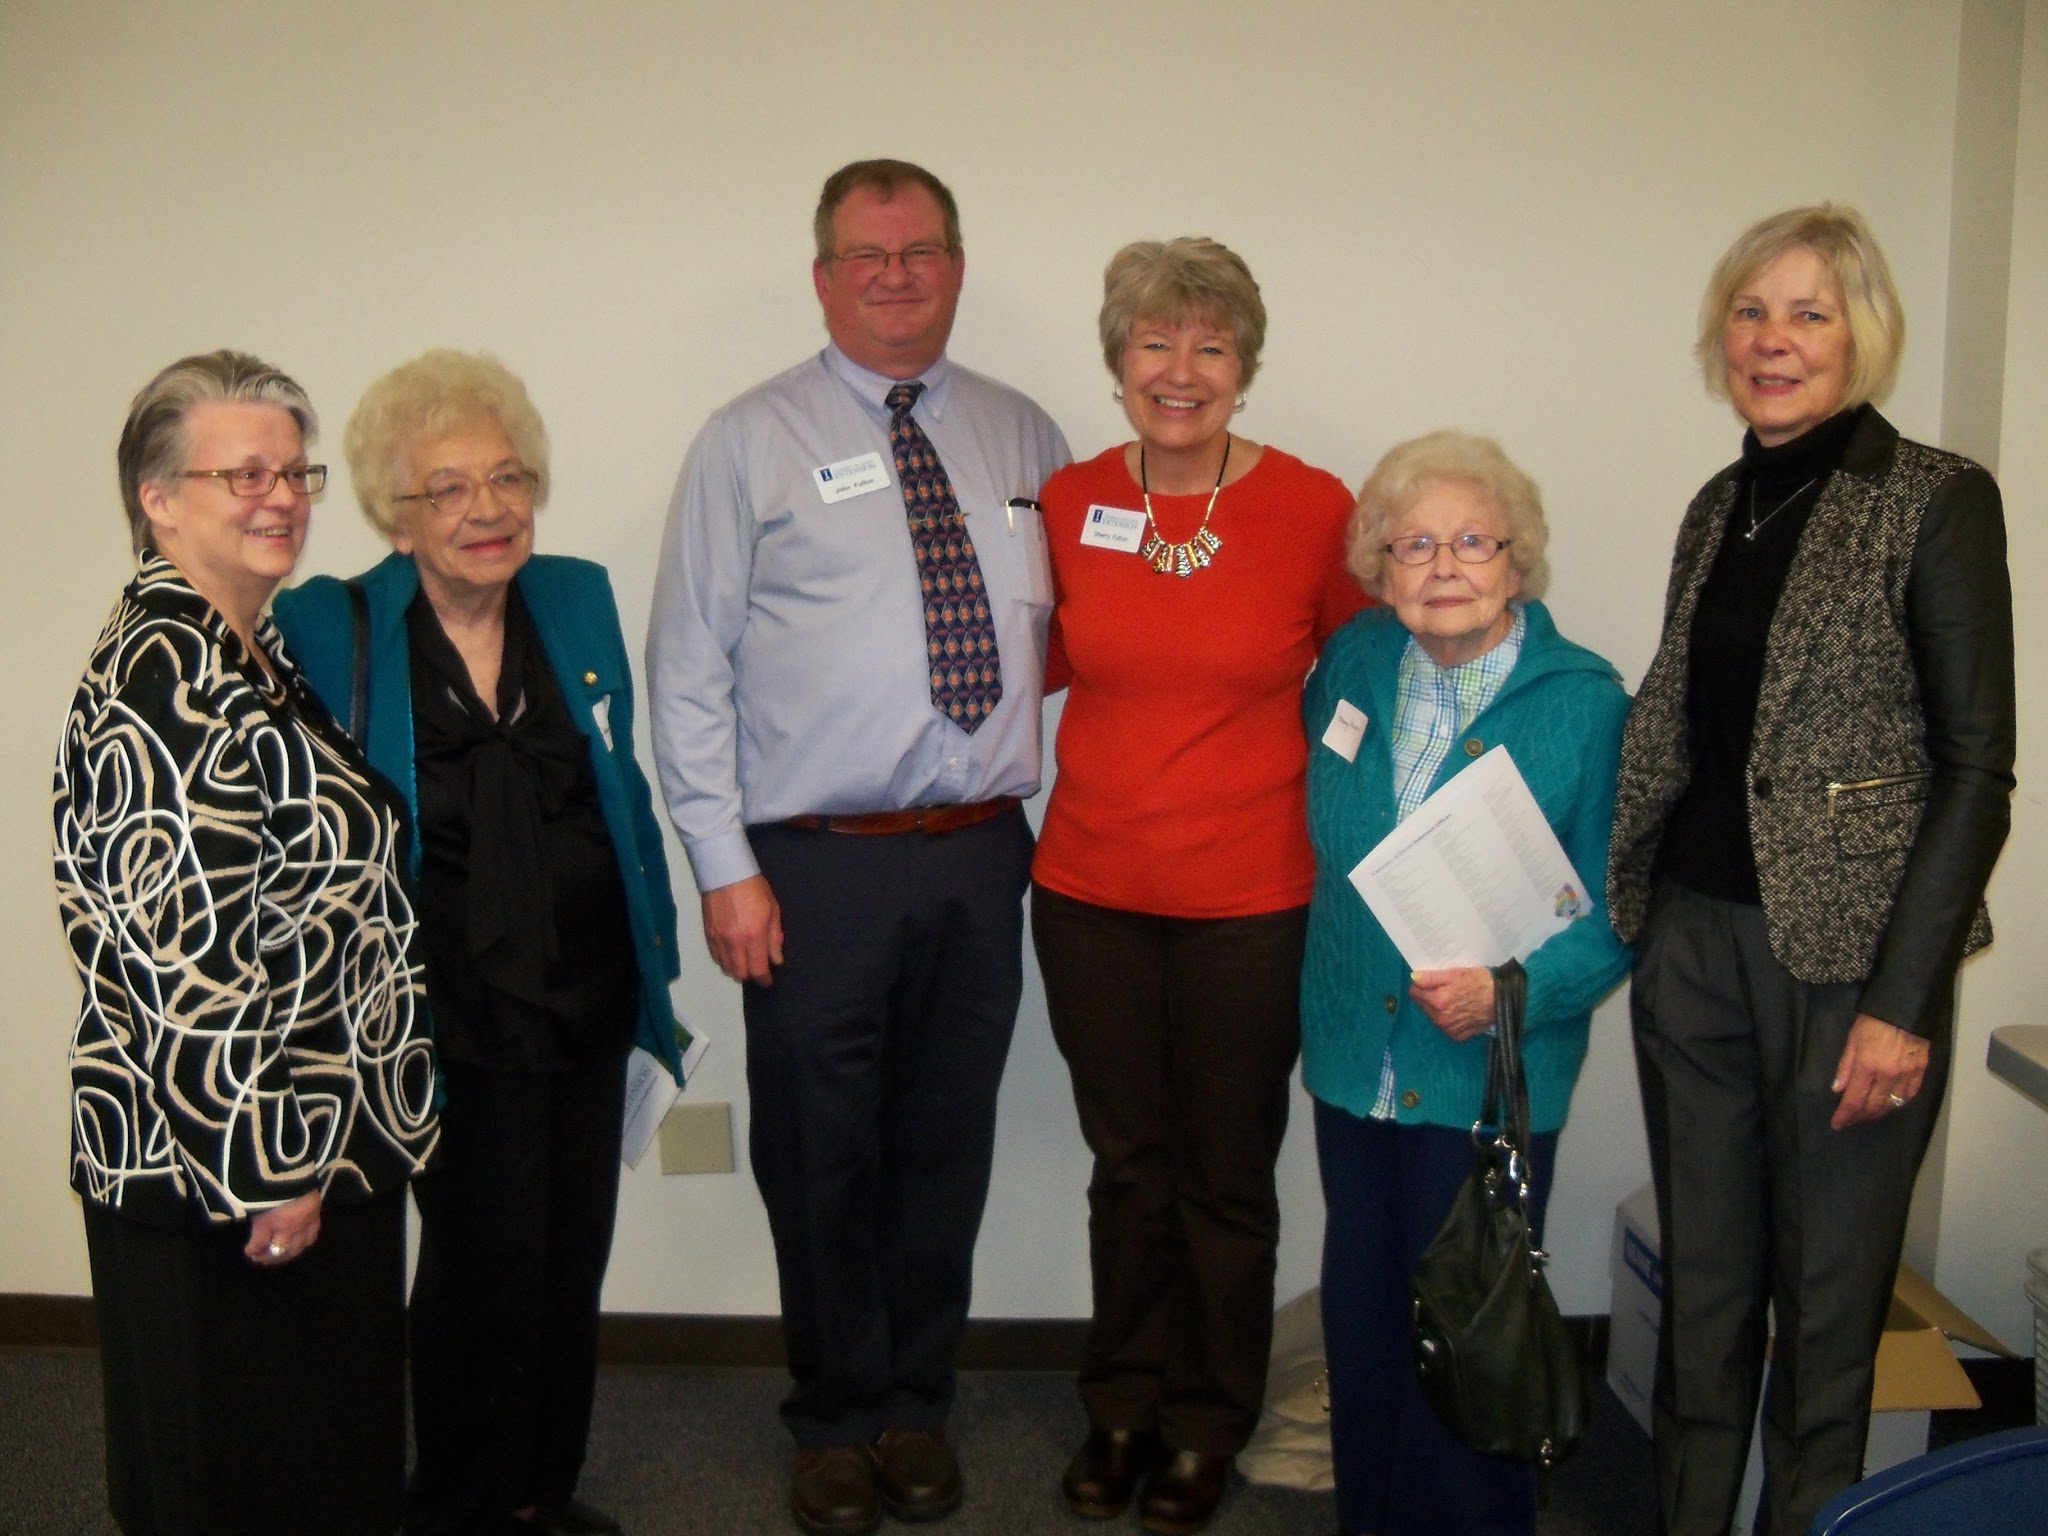 Jane Scherer, Marge Sohn, John Fulton, Sherry Fulton, Marge Mead, & Nancy King.